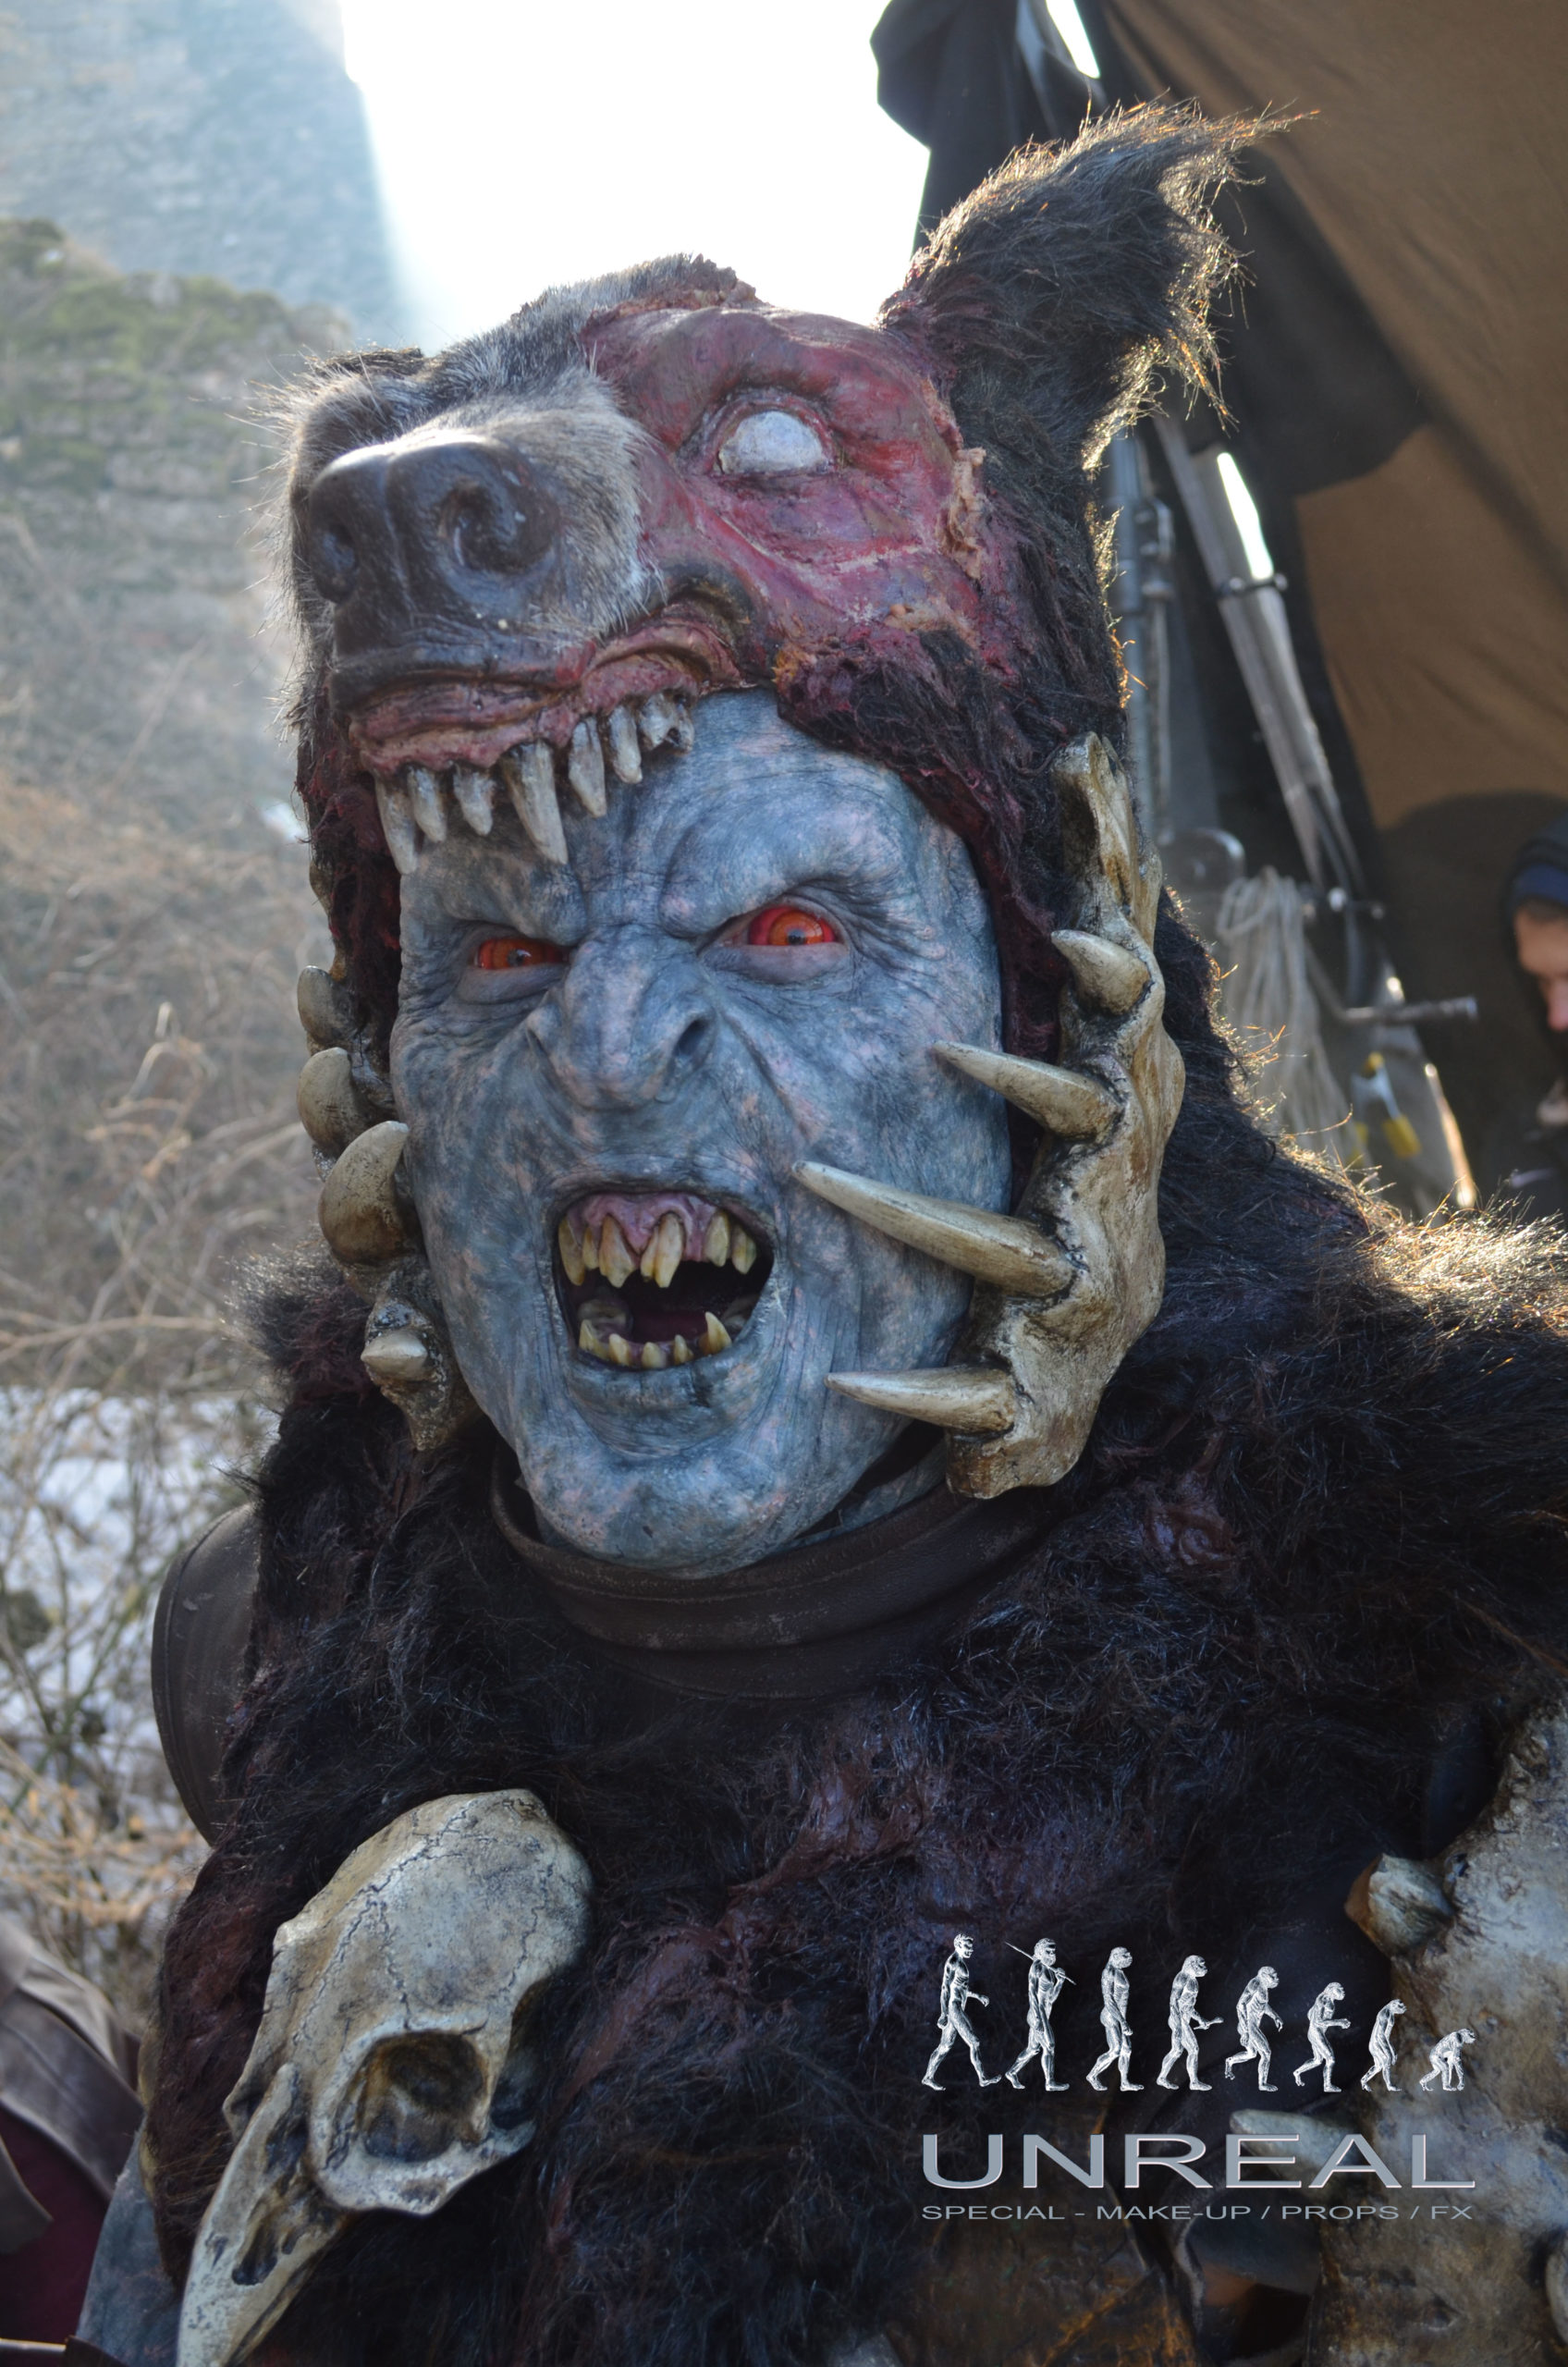 Shadow of War orc BEAST MASTER designed and created by Unreal.eu